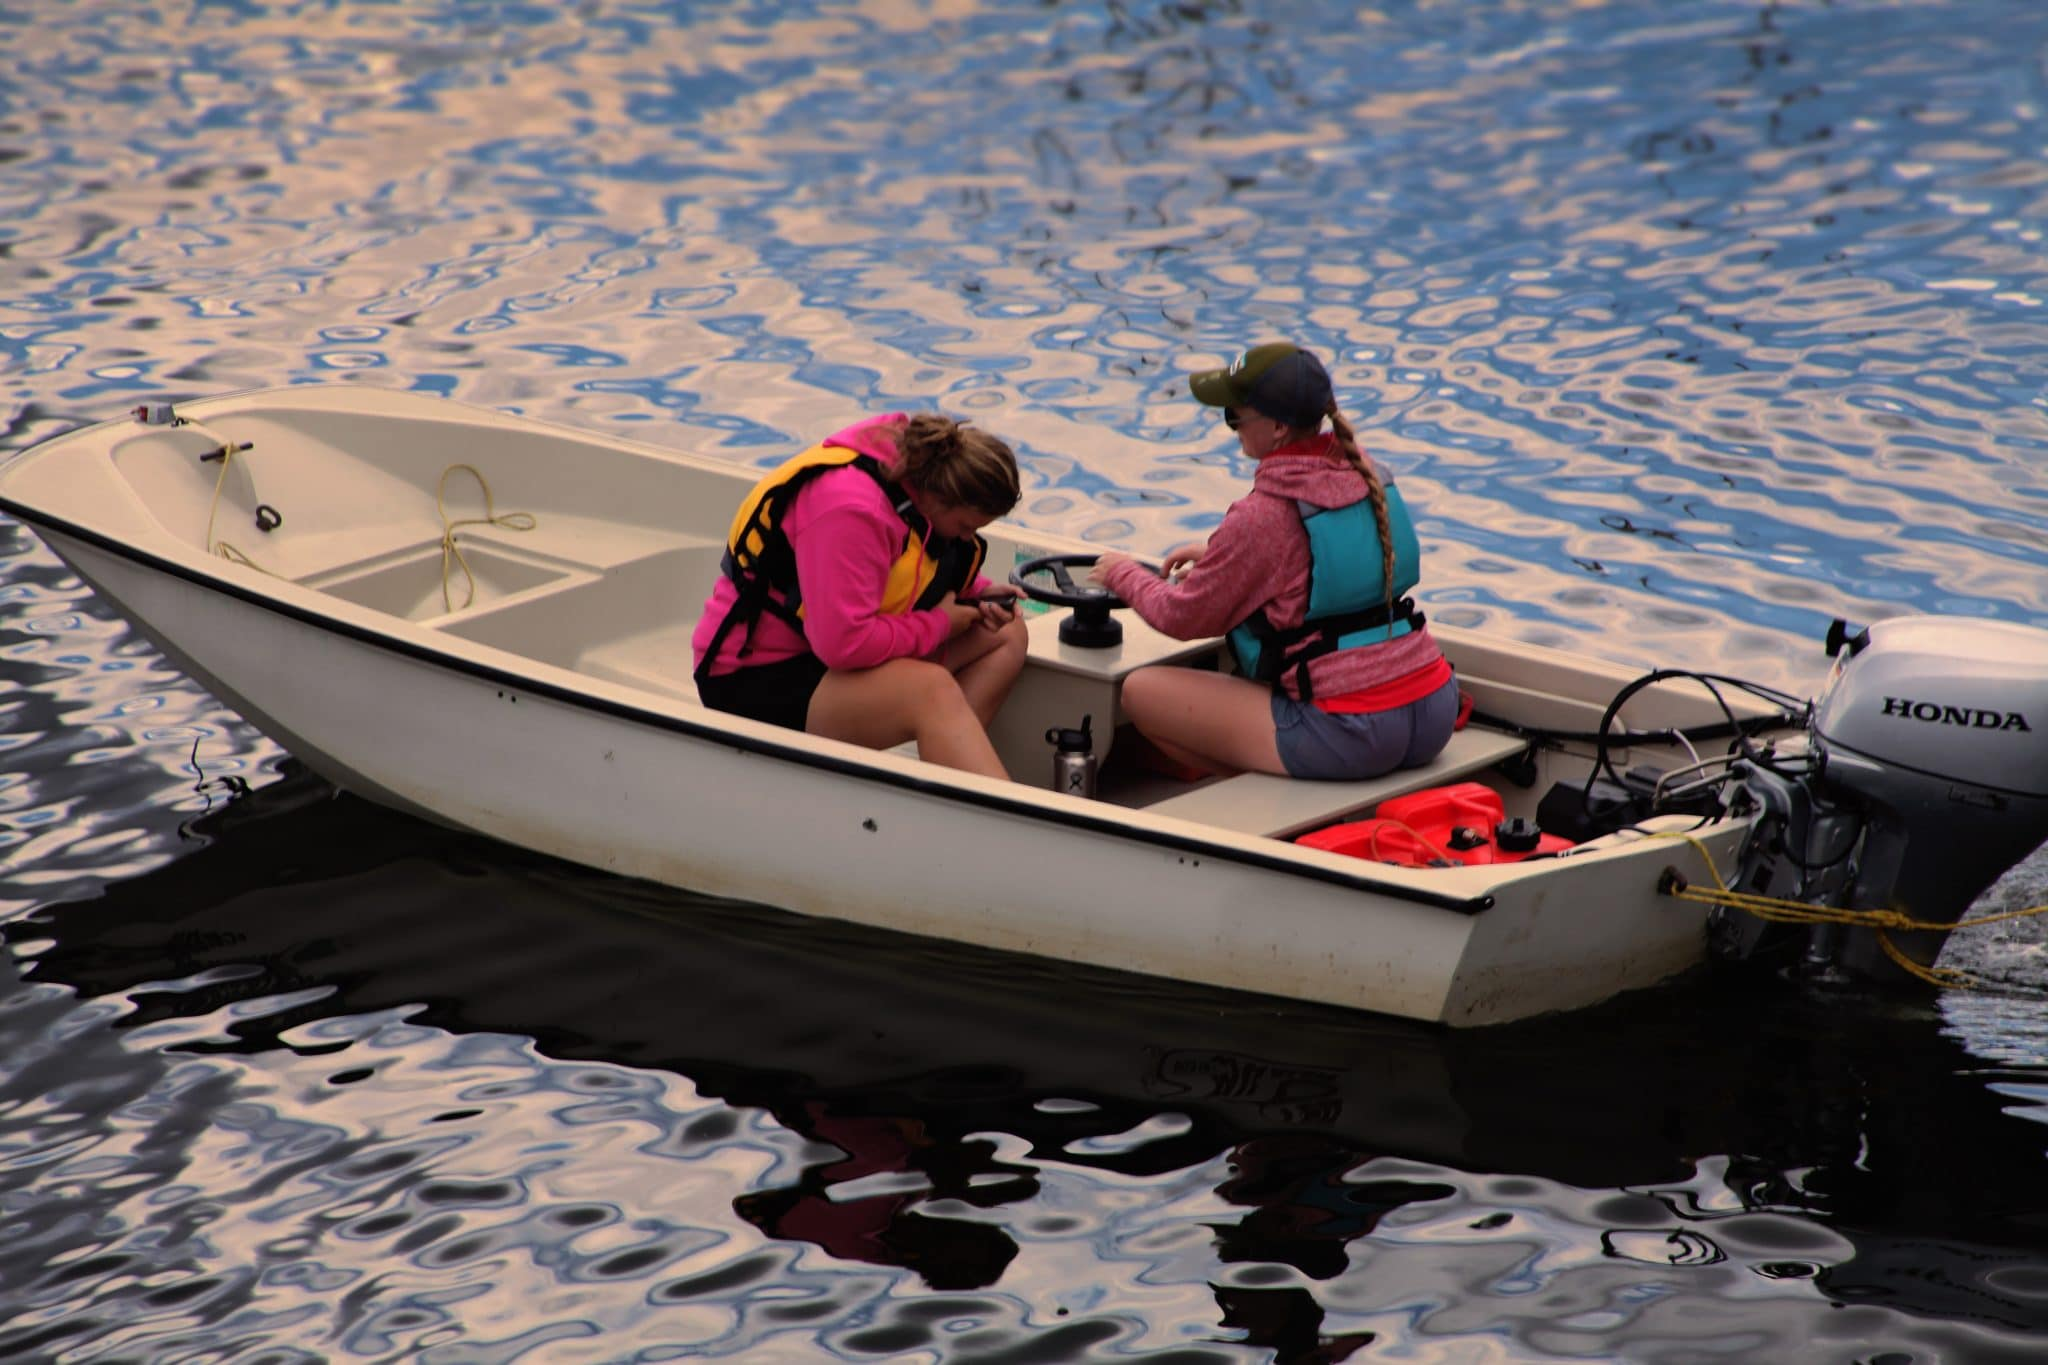 2 ladies in a bay boat on a body of water